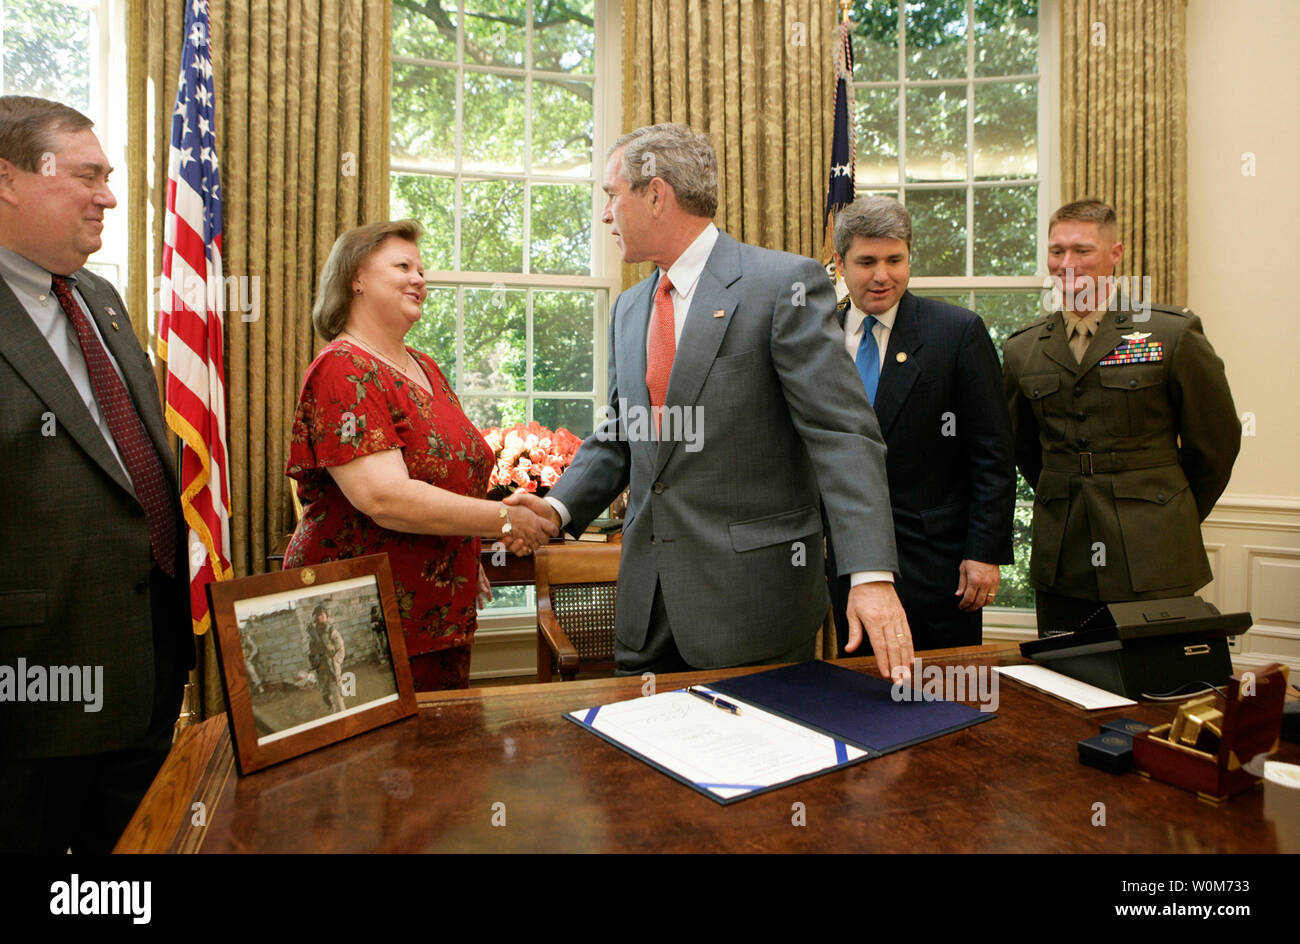 President George W. Bush shakes the hand of Janet Norwood after signing into law H.R. 1001, the Naming of the Sergeant Byron W. Borwood Post Office Building, designating the US Postal Service facility in Pflugerville, Texas, in honor of the 25-year-old Marine who died in combat, in the White House on July 21, 2001.  Joining Mrs. Norwood and the President for the signing are, from left:  Bill Norwood, husband and father; Congressman Michael McCaul, R-Texas, and First Lt. T. Ryan Sparks, 3rd Battalion, 1st Marines.    (UPI Photo/Eric Draper/White House) Stock Photo